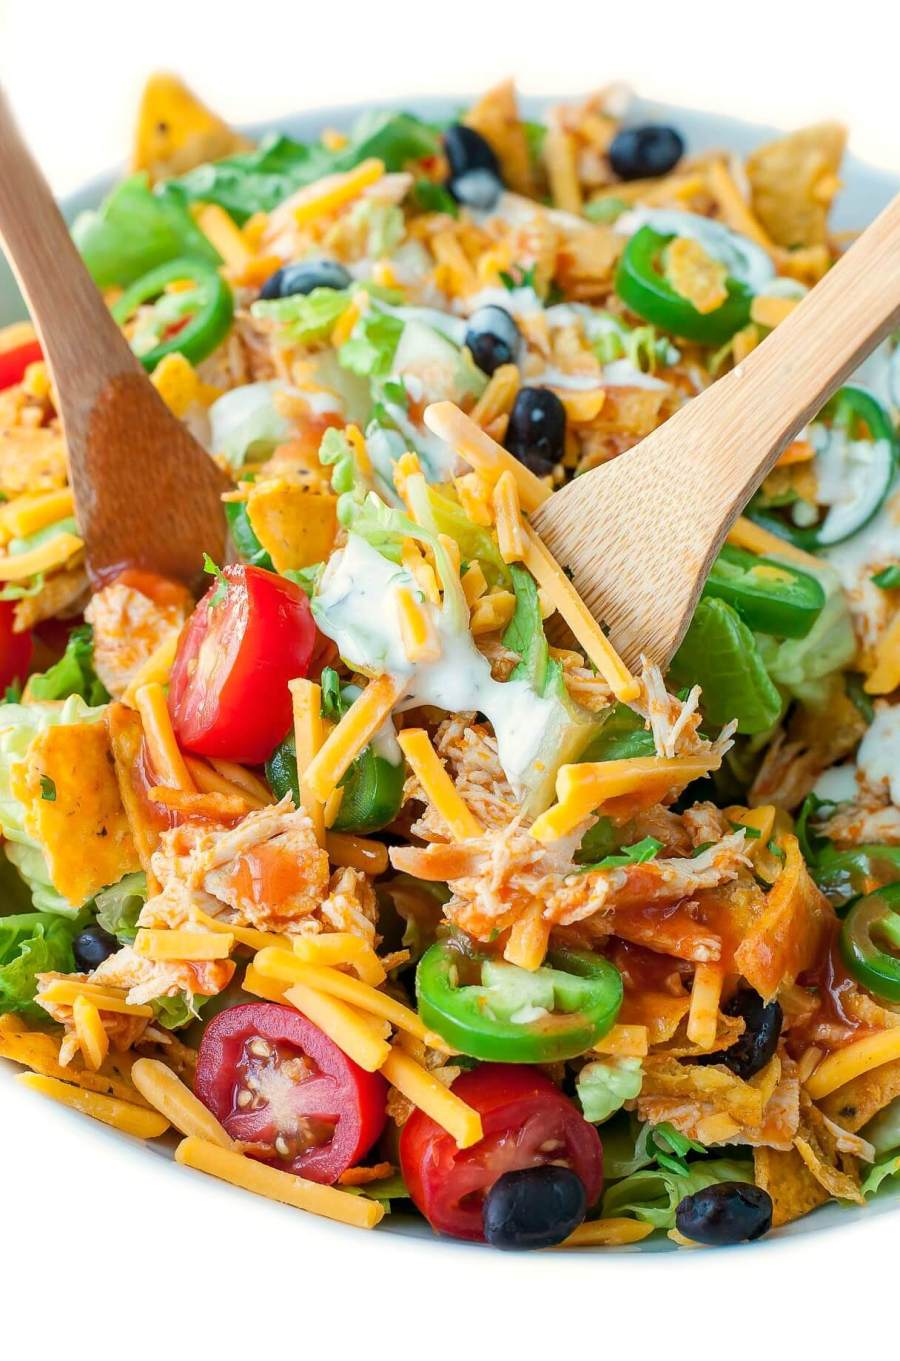 buffalo-chicken-taco-salad-recipe-peasandcrayons-edit-2